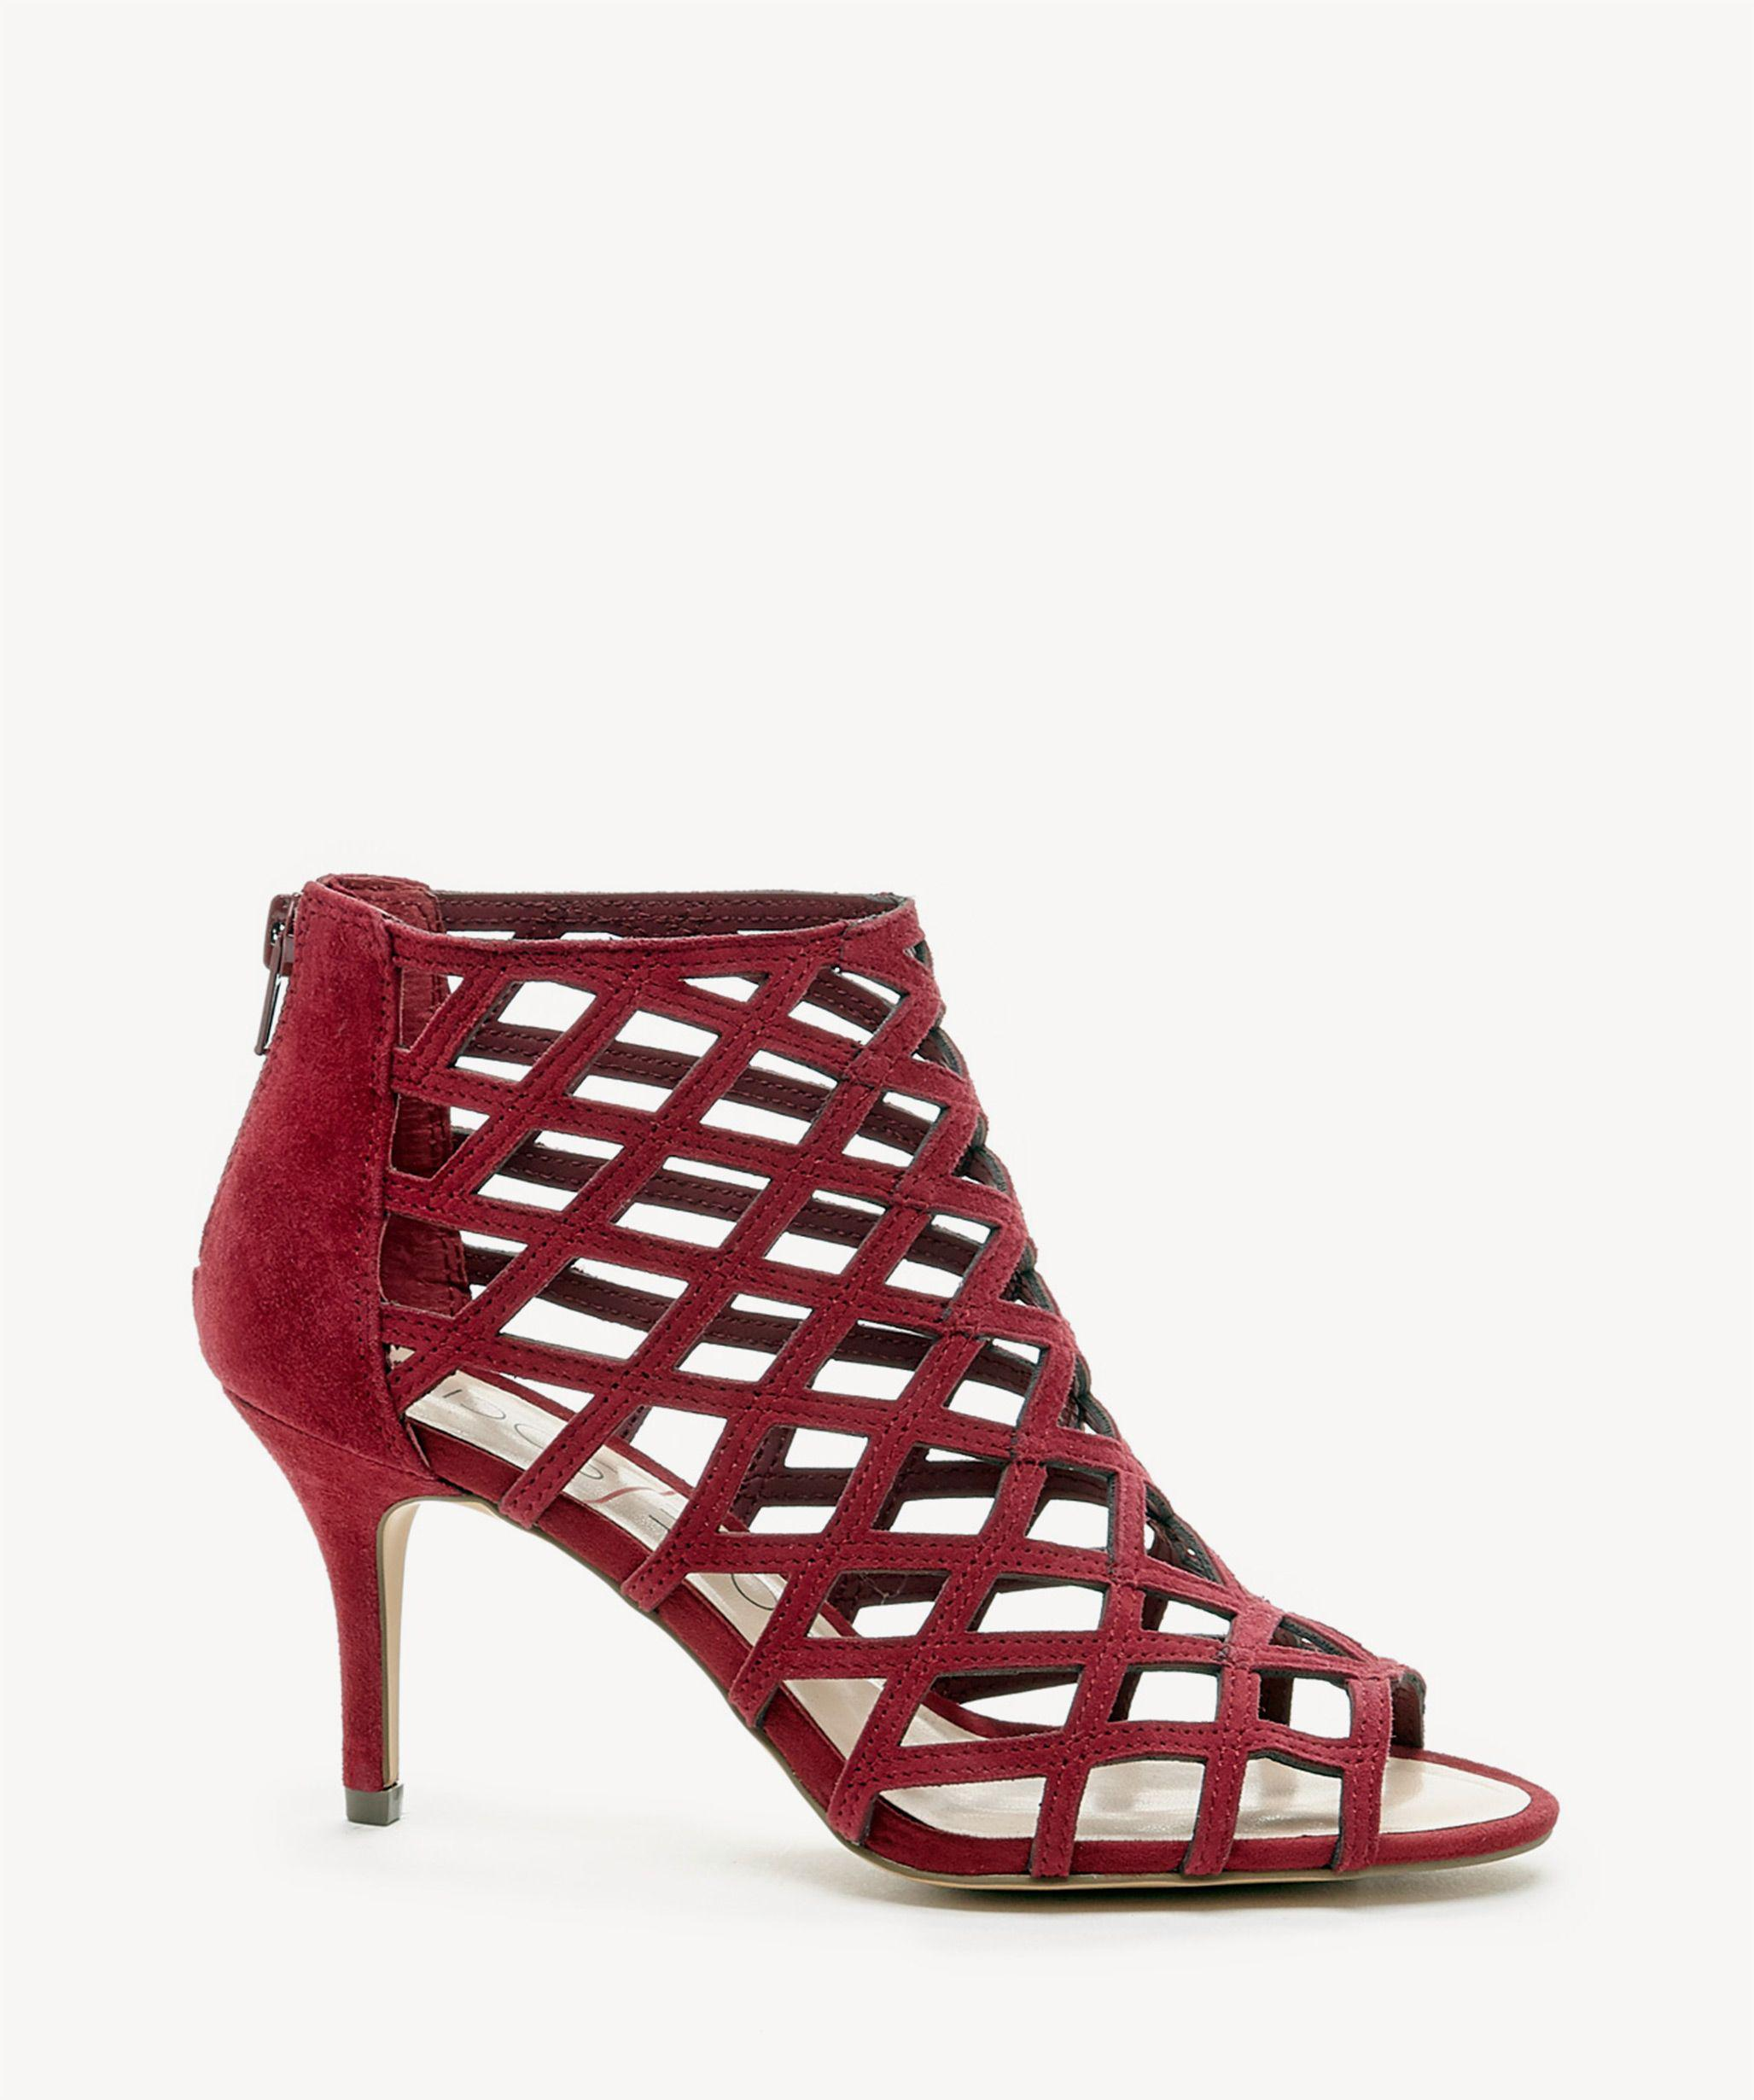 bb4f02d4399 Sole Society Red Portia Caged Mid Heel